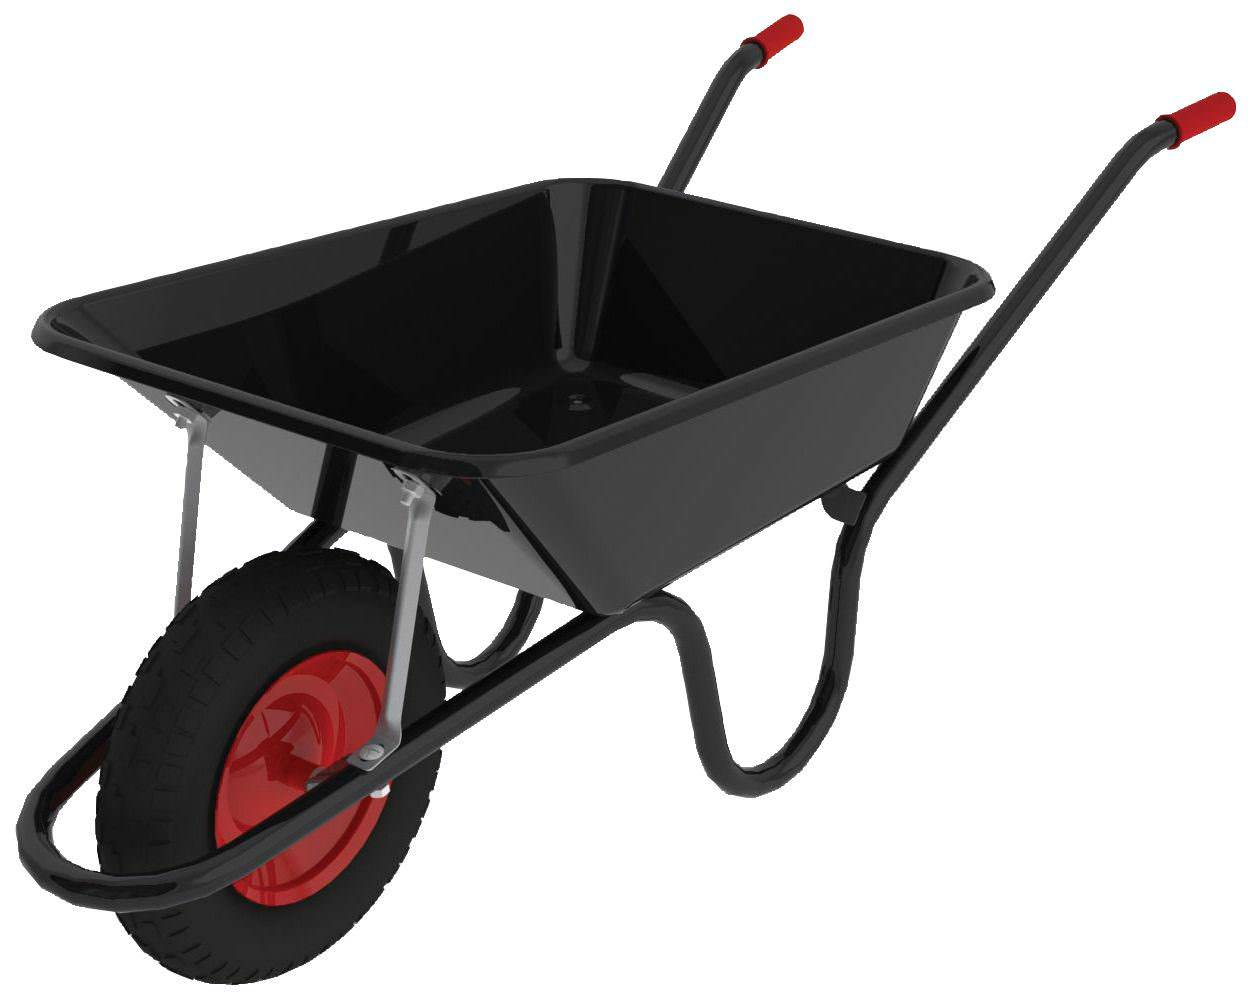 Chillington Camden Classic Contractors Wheelbarrow